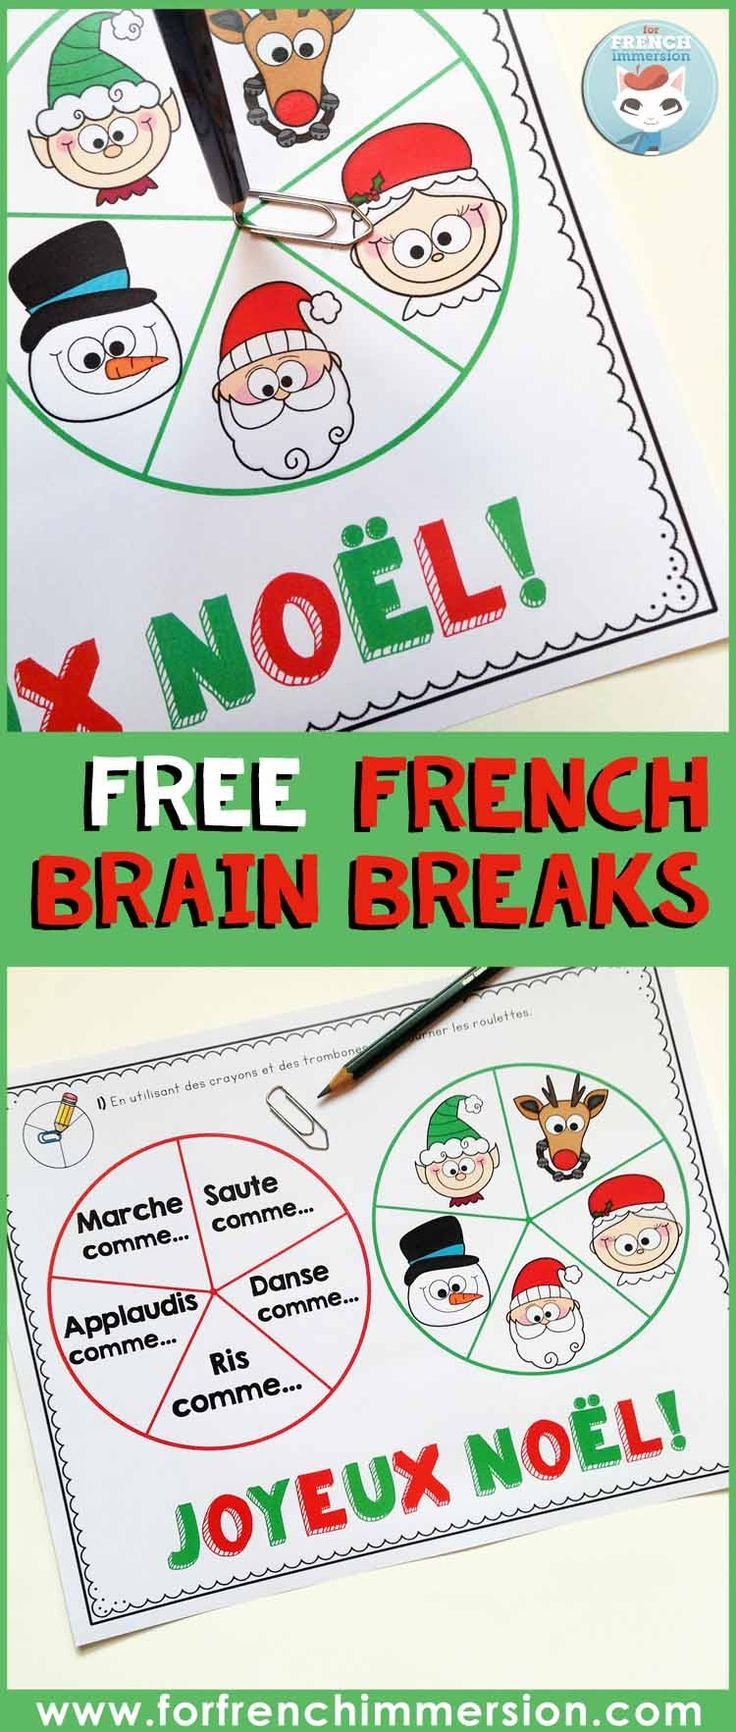 FREE French brain breaks for Christmas! Spin the spinners and give your students' brains a fun break. Noël